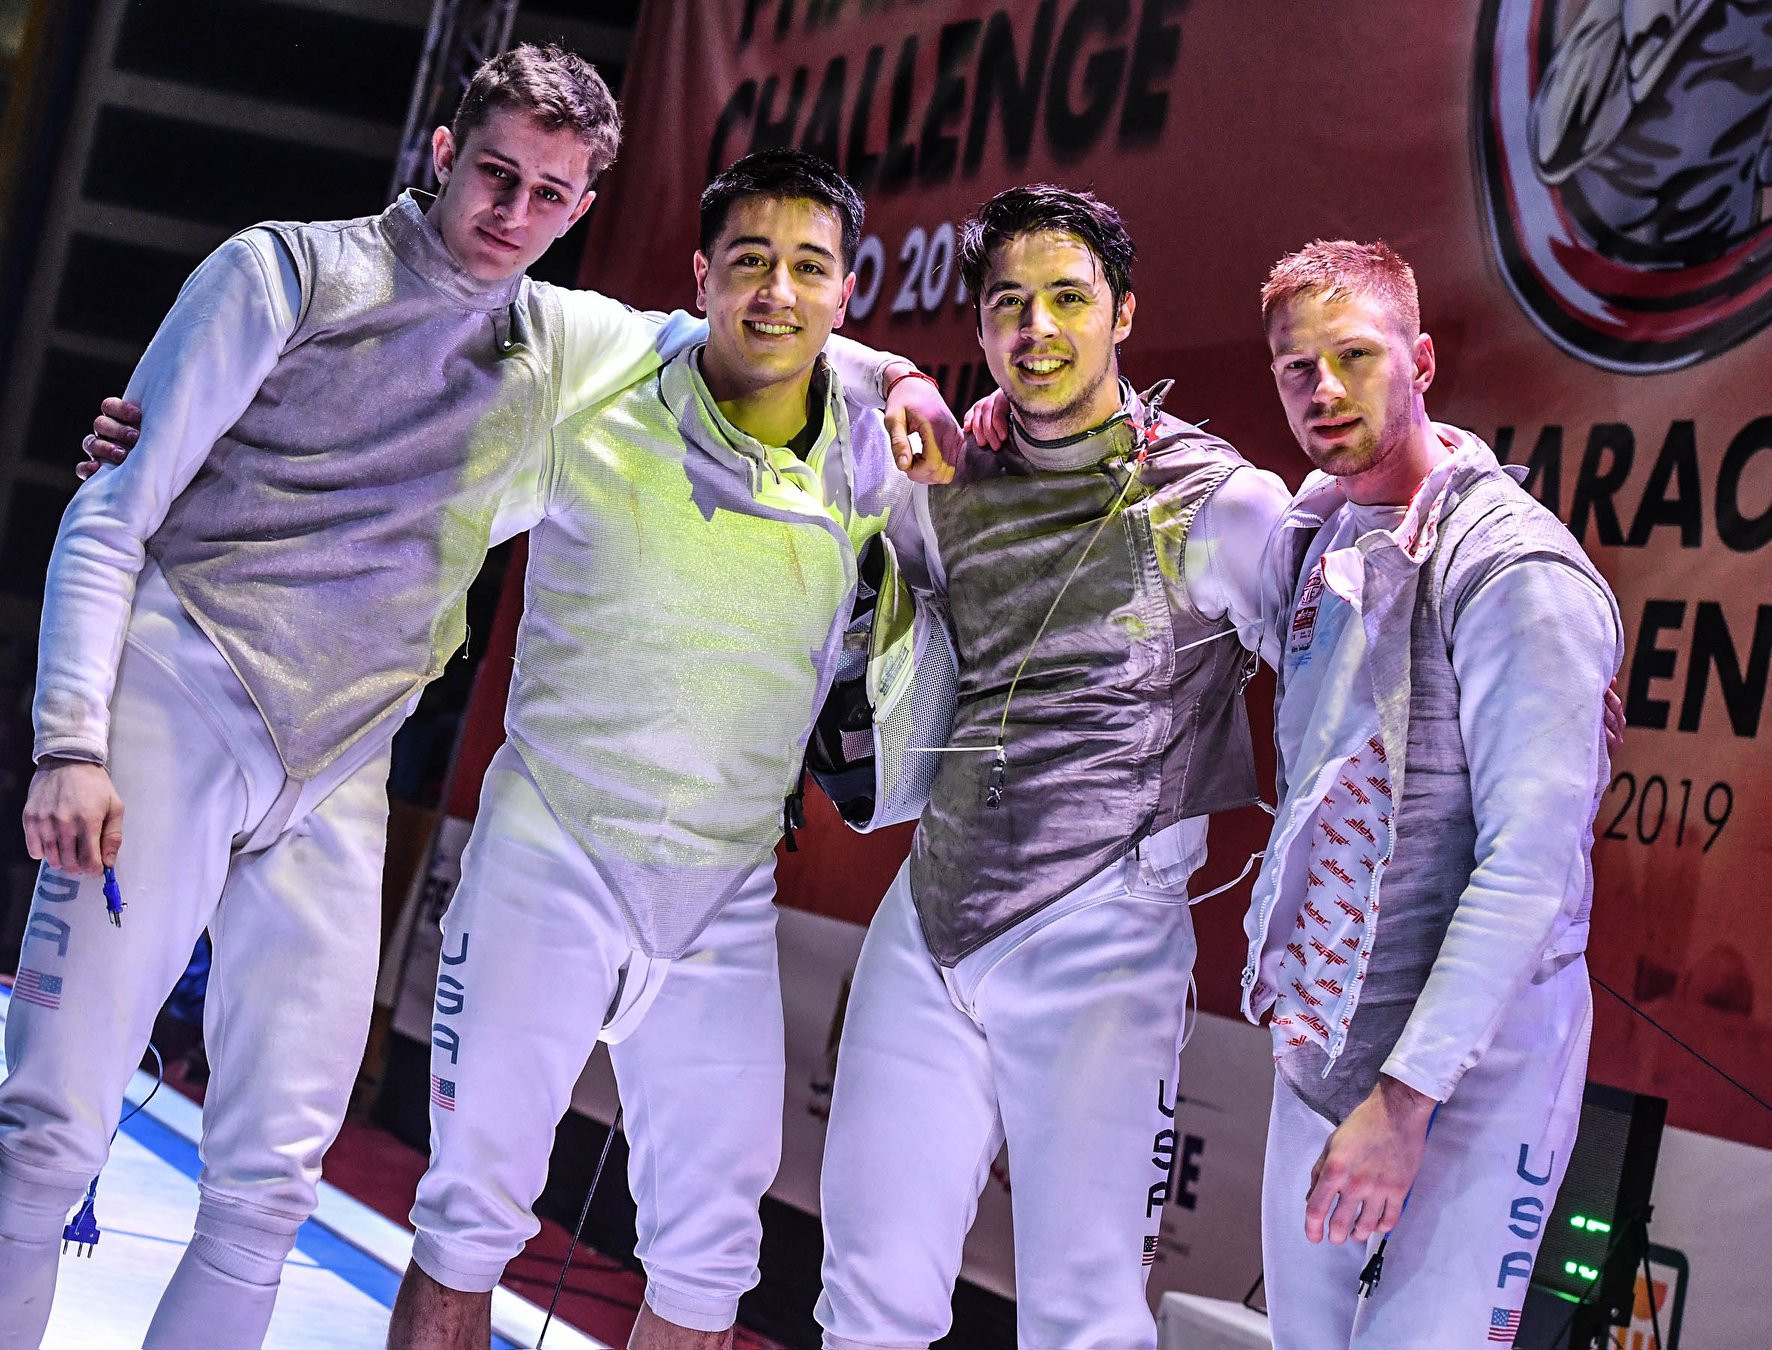 United States claim team title as FIE Men's Foil World Cup in Cairo concludes